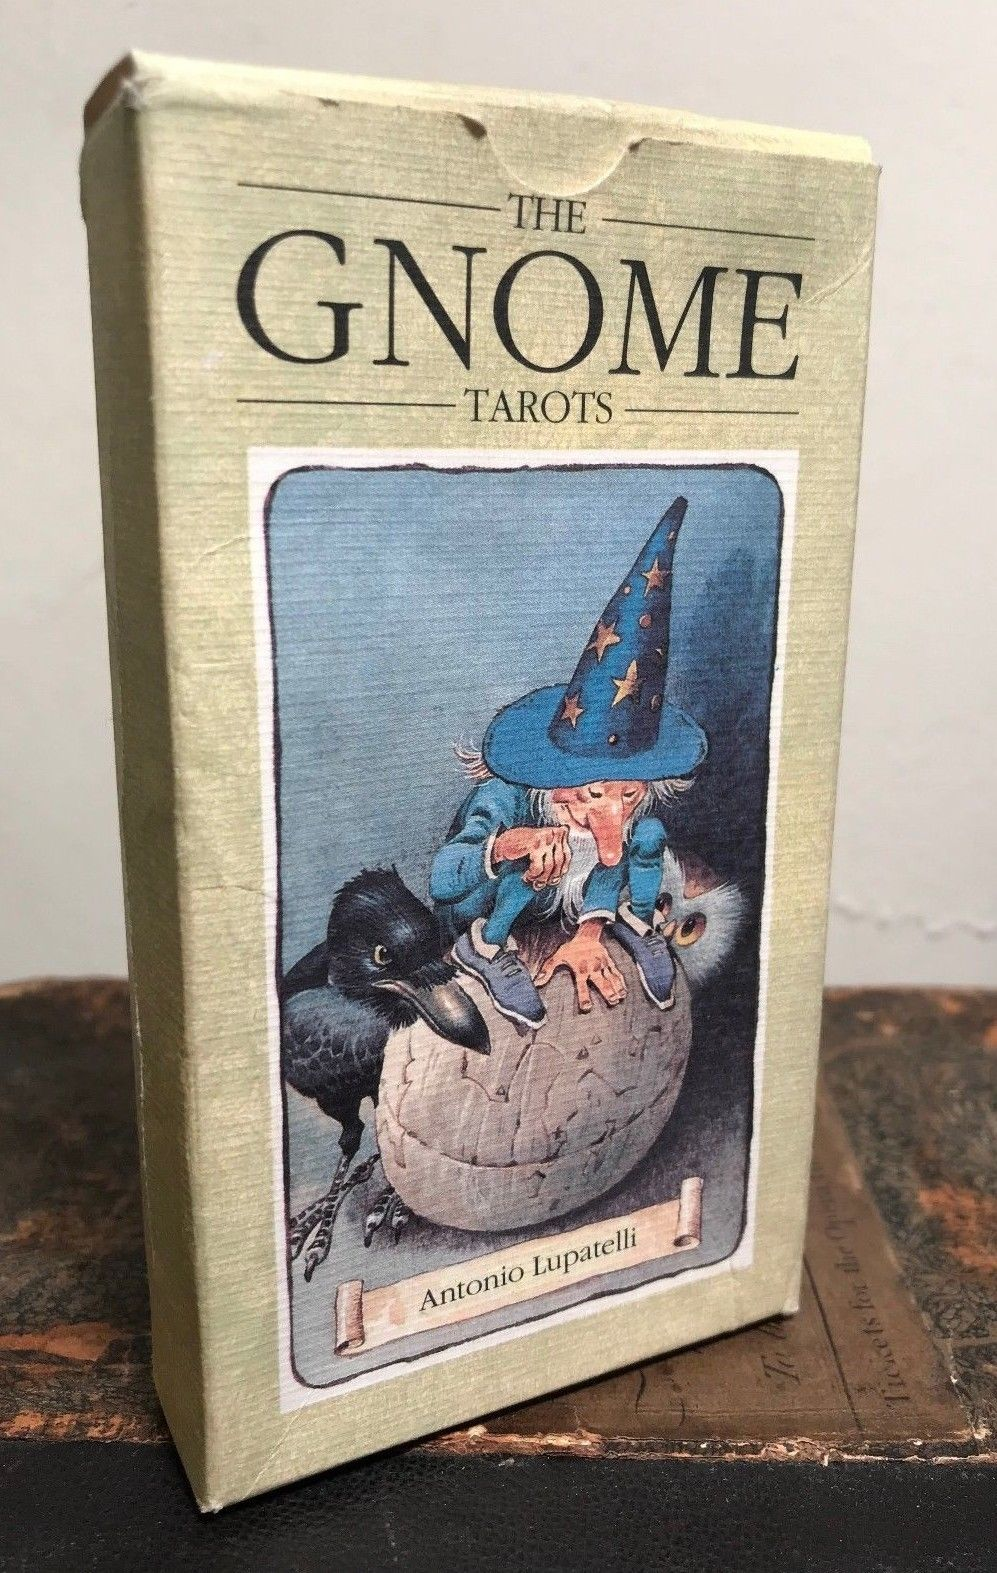 1991 - THE GNOME TAROTS - ANTIONIO LUPATELLI - 1st Ed 1991, SCARCE BOX DESIGN